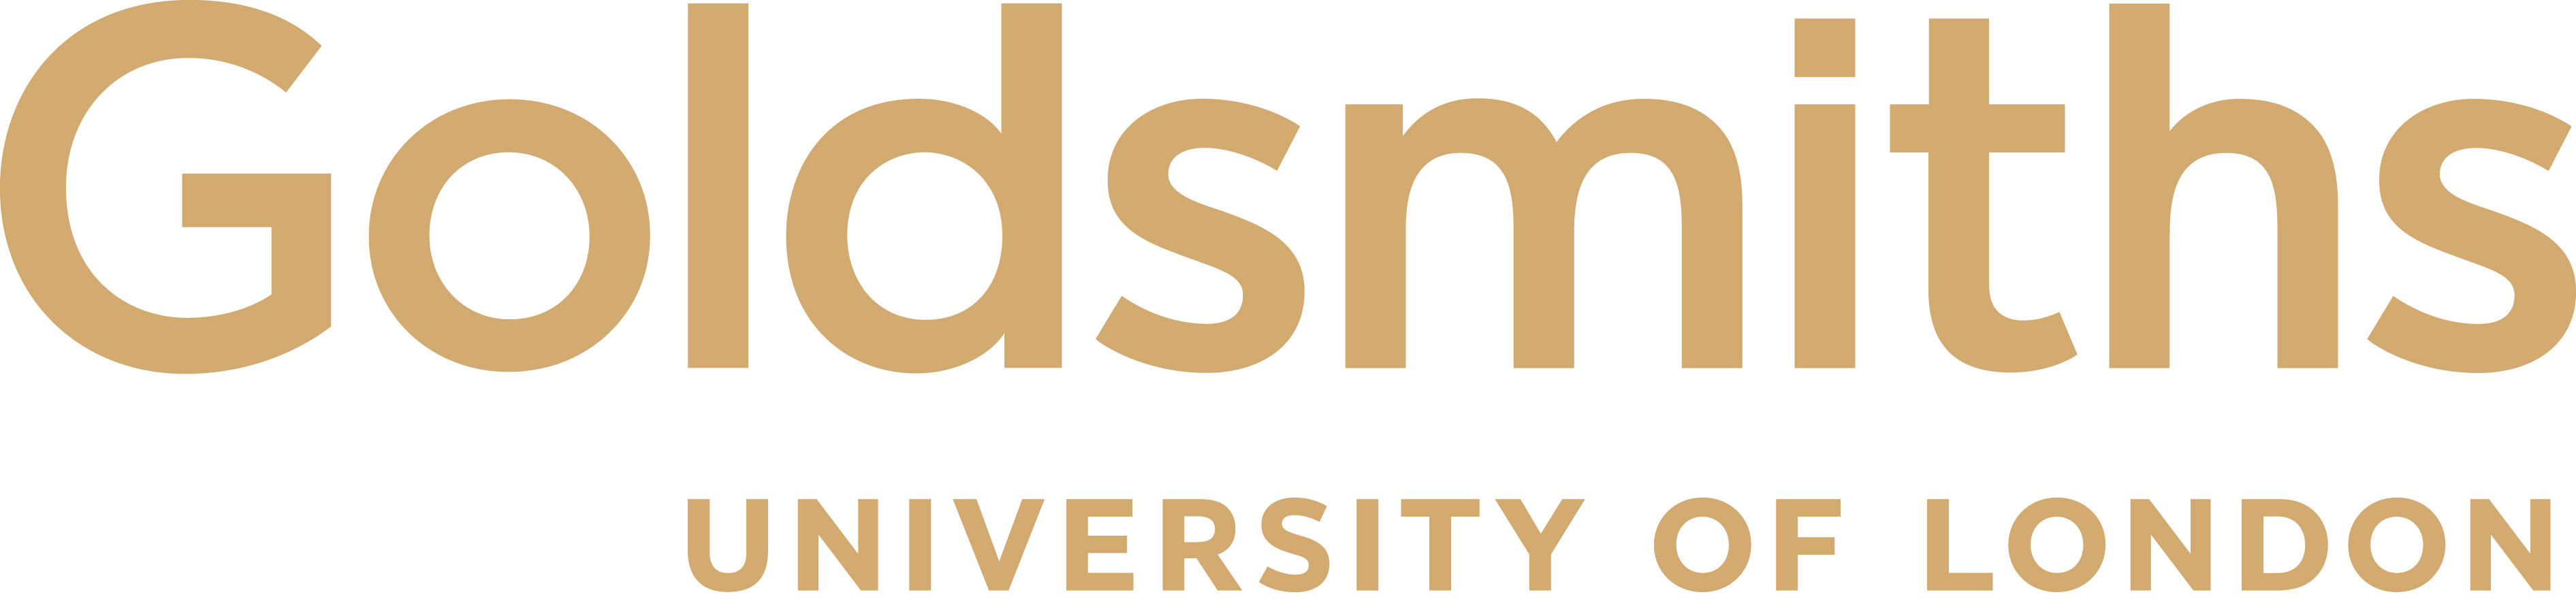 Goldsmiths-gold-logo-big.png